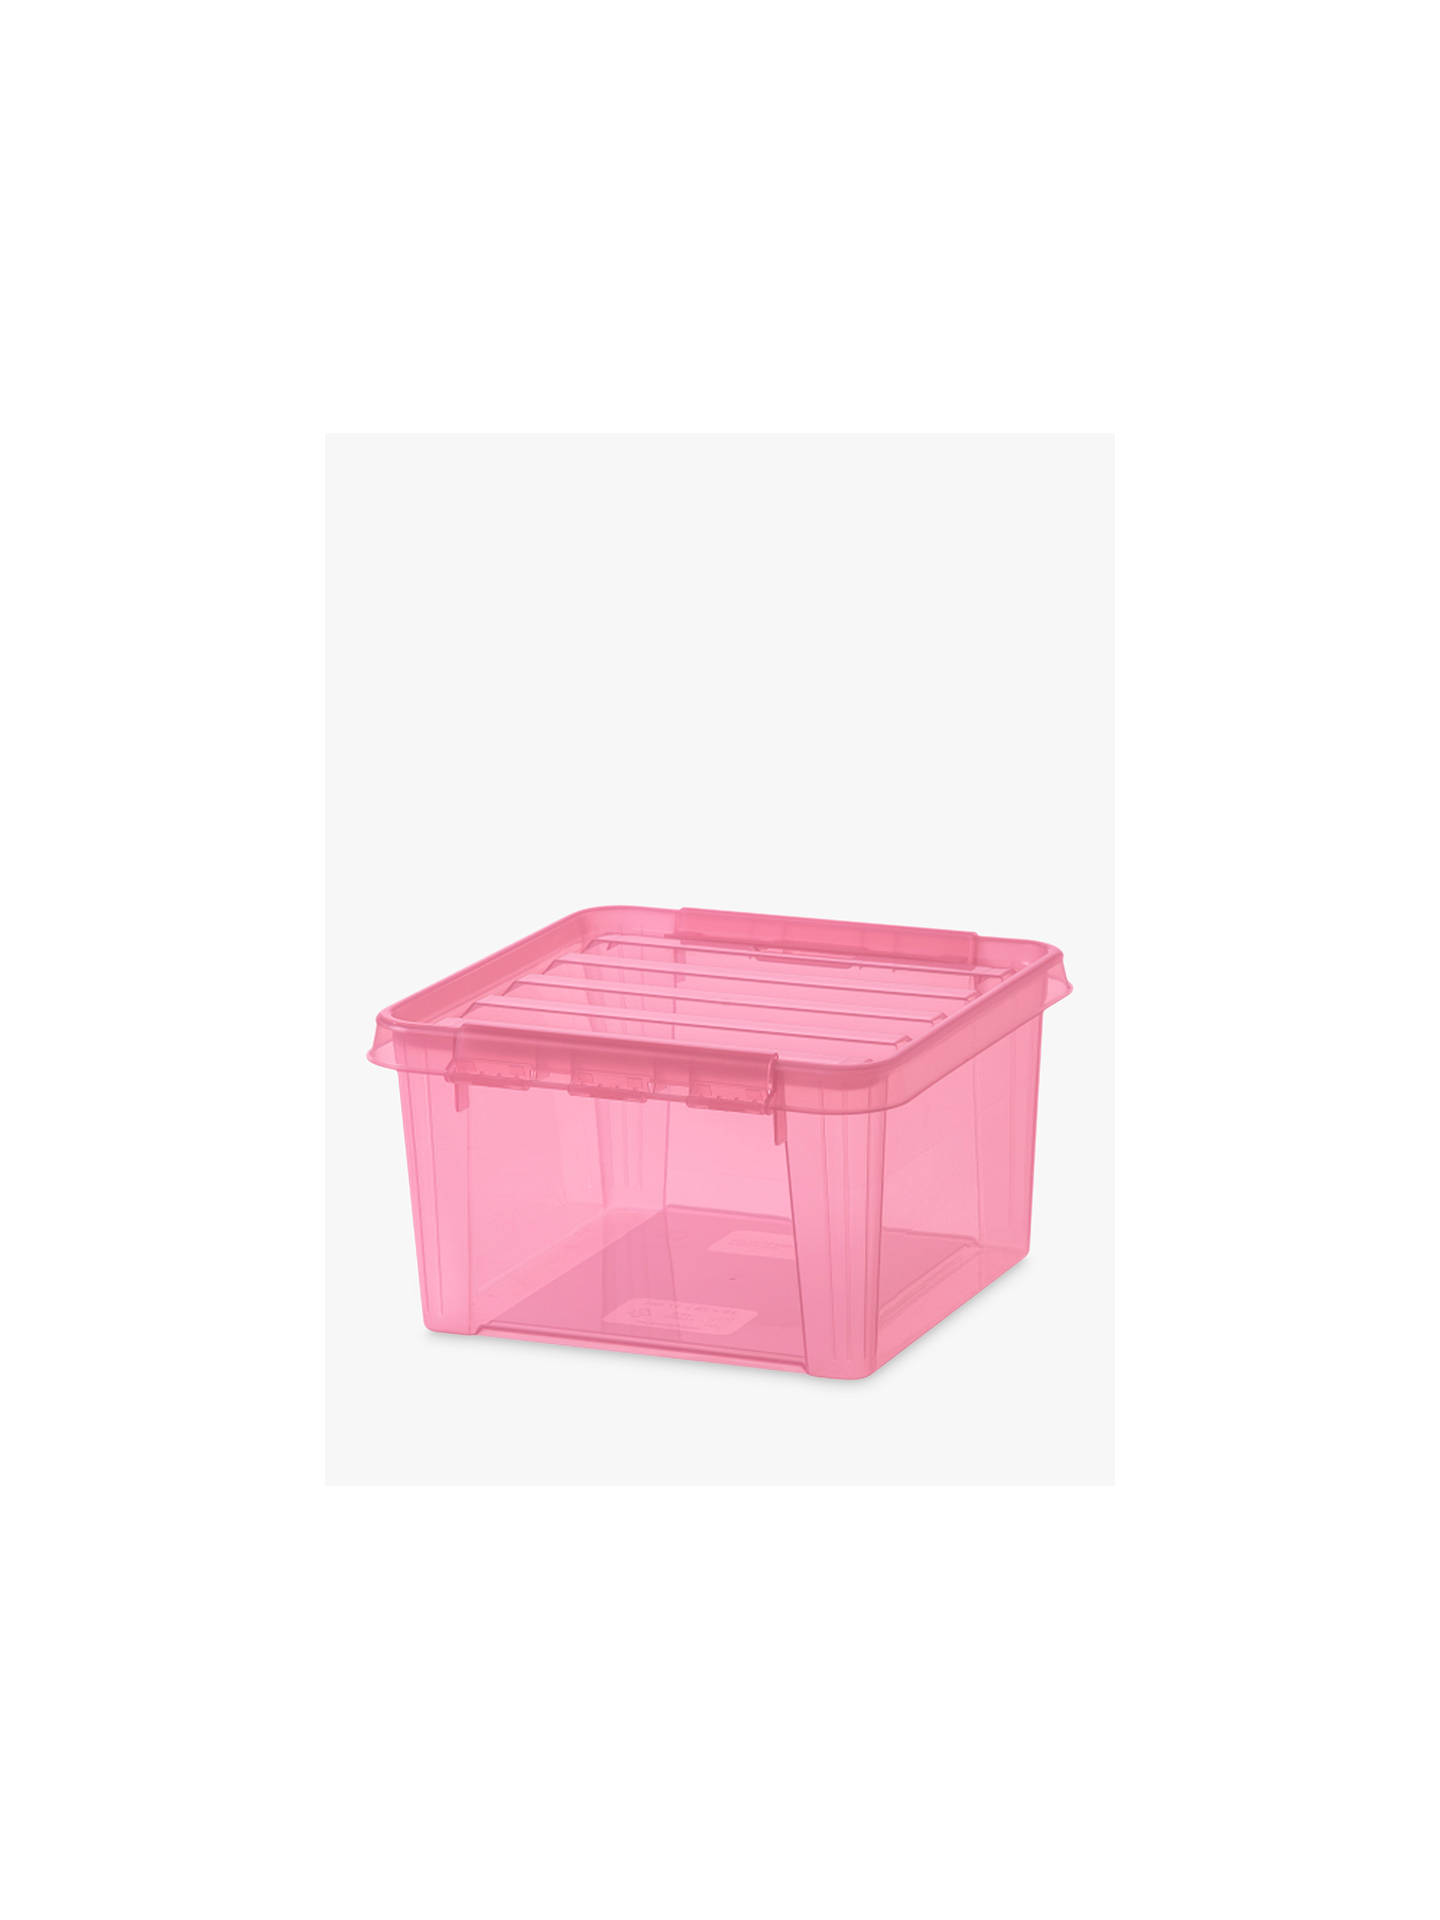 BuySmartStore by Orthex 12 Plastic Storage Box, Rose Online at johnlewis.com